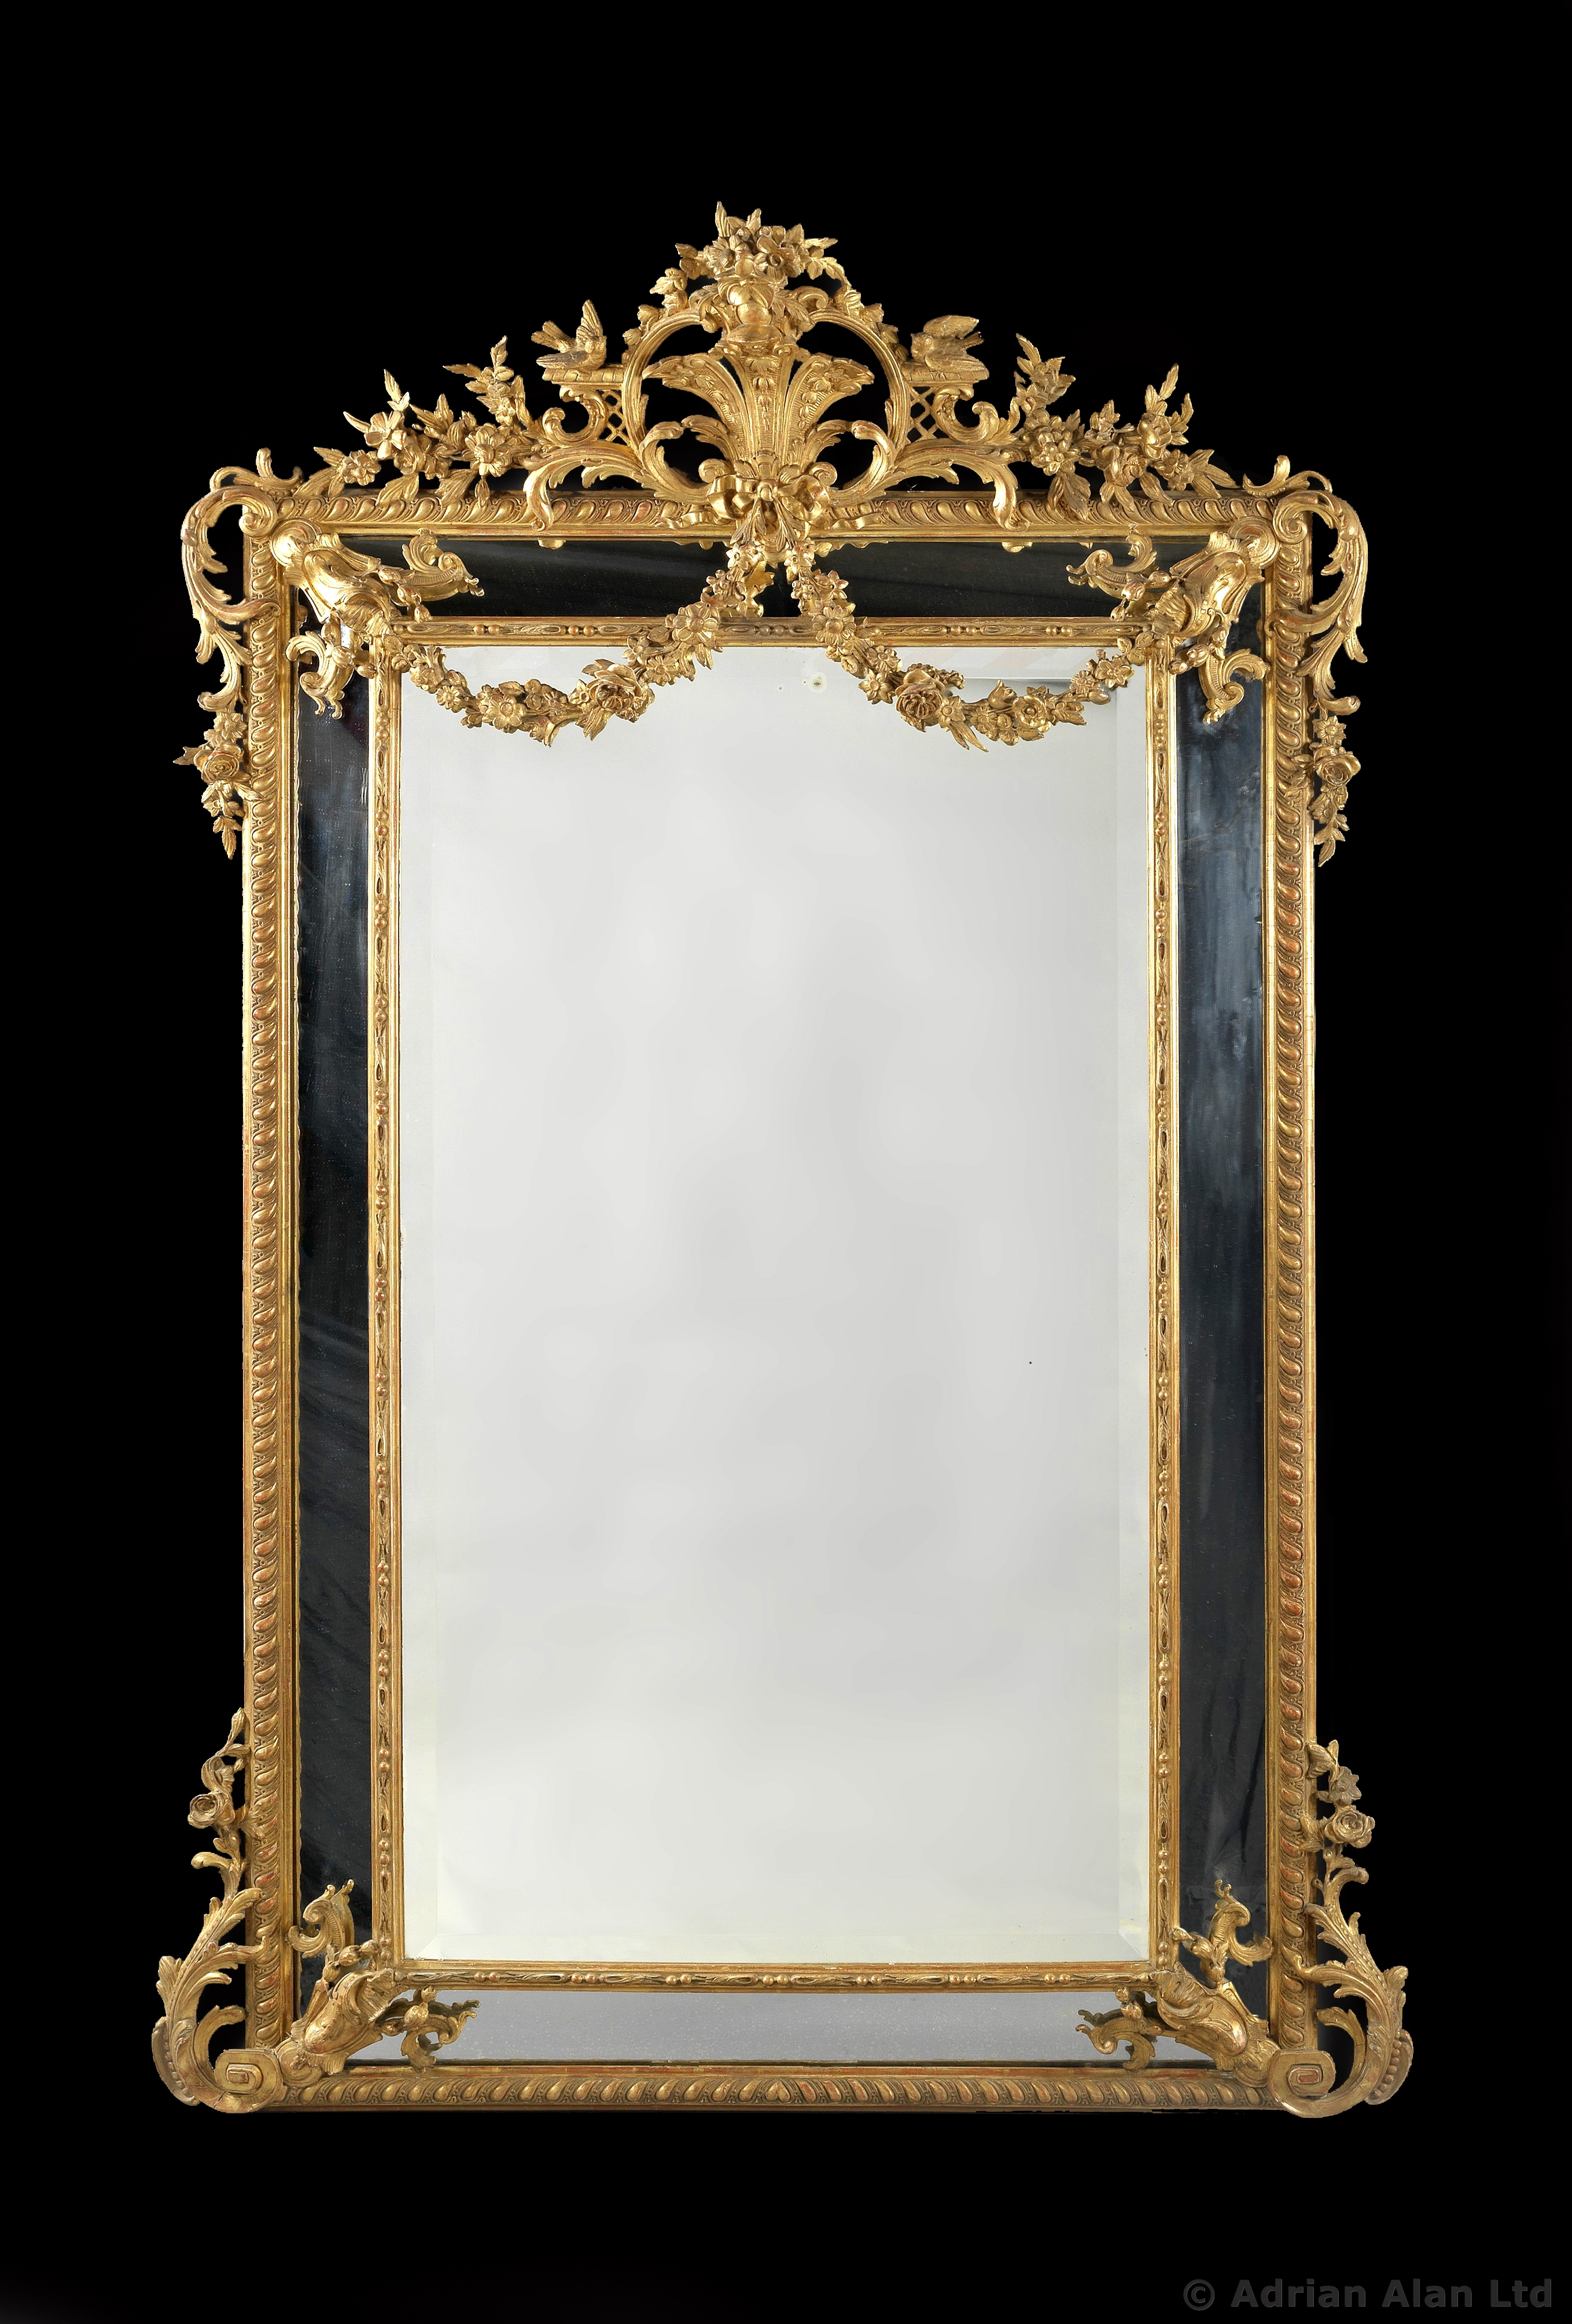 Italian Mirror 1680 Antique Rococo Mirror Very Rare 17th Century With Victorian Mirrors For Sale (Image 9 of 15)